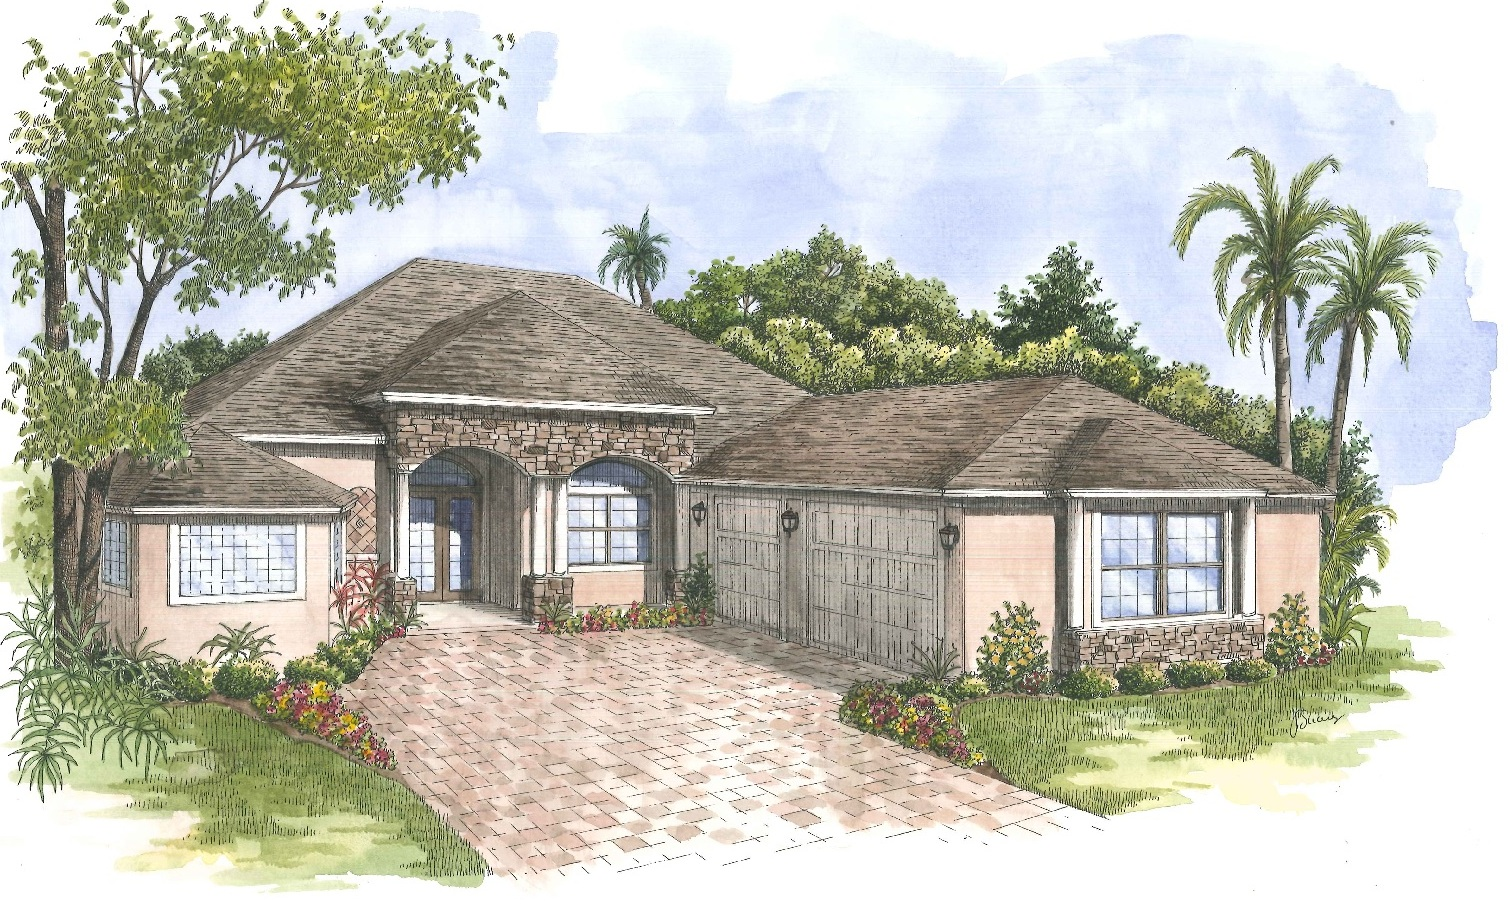 Harbor Hills Willow Model Front Elevation Rendering